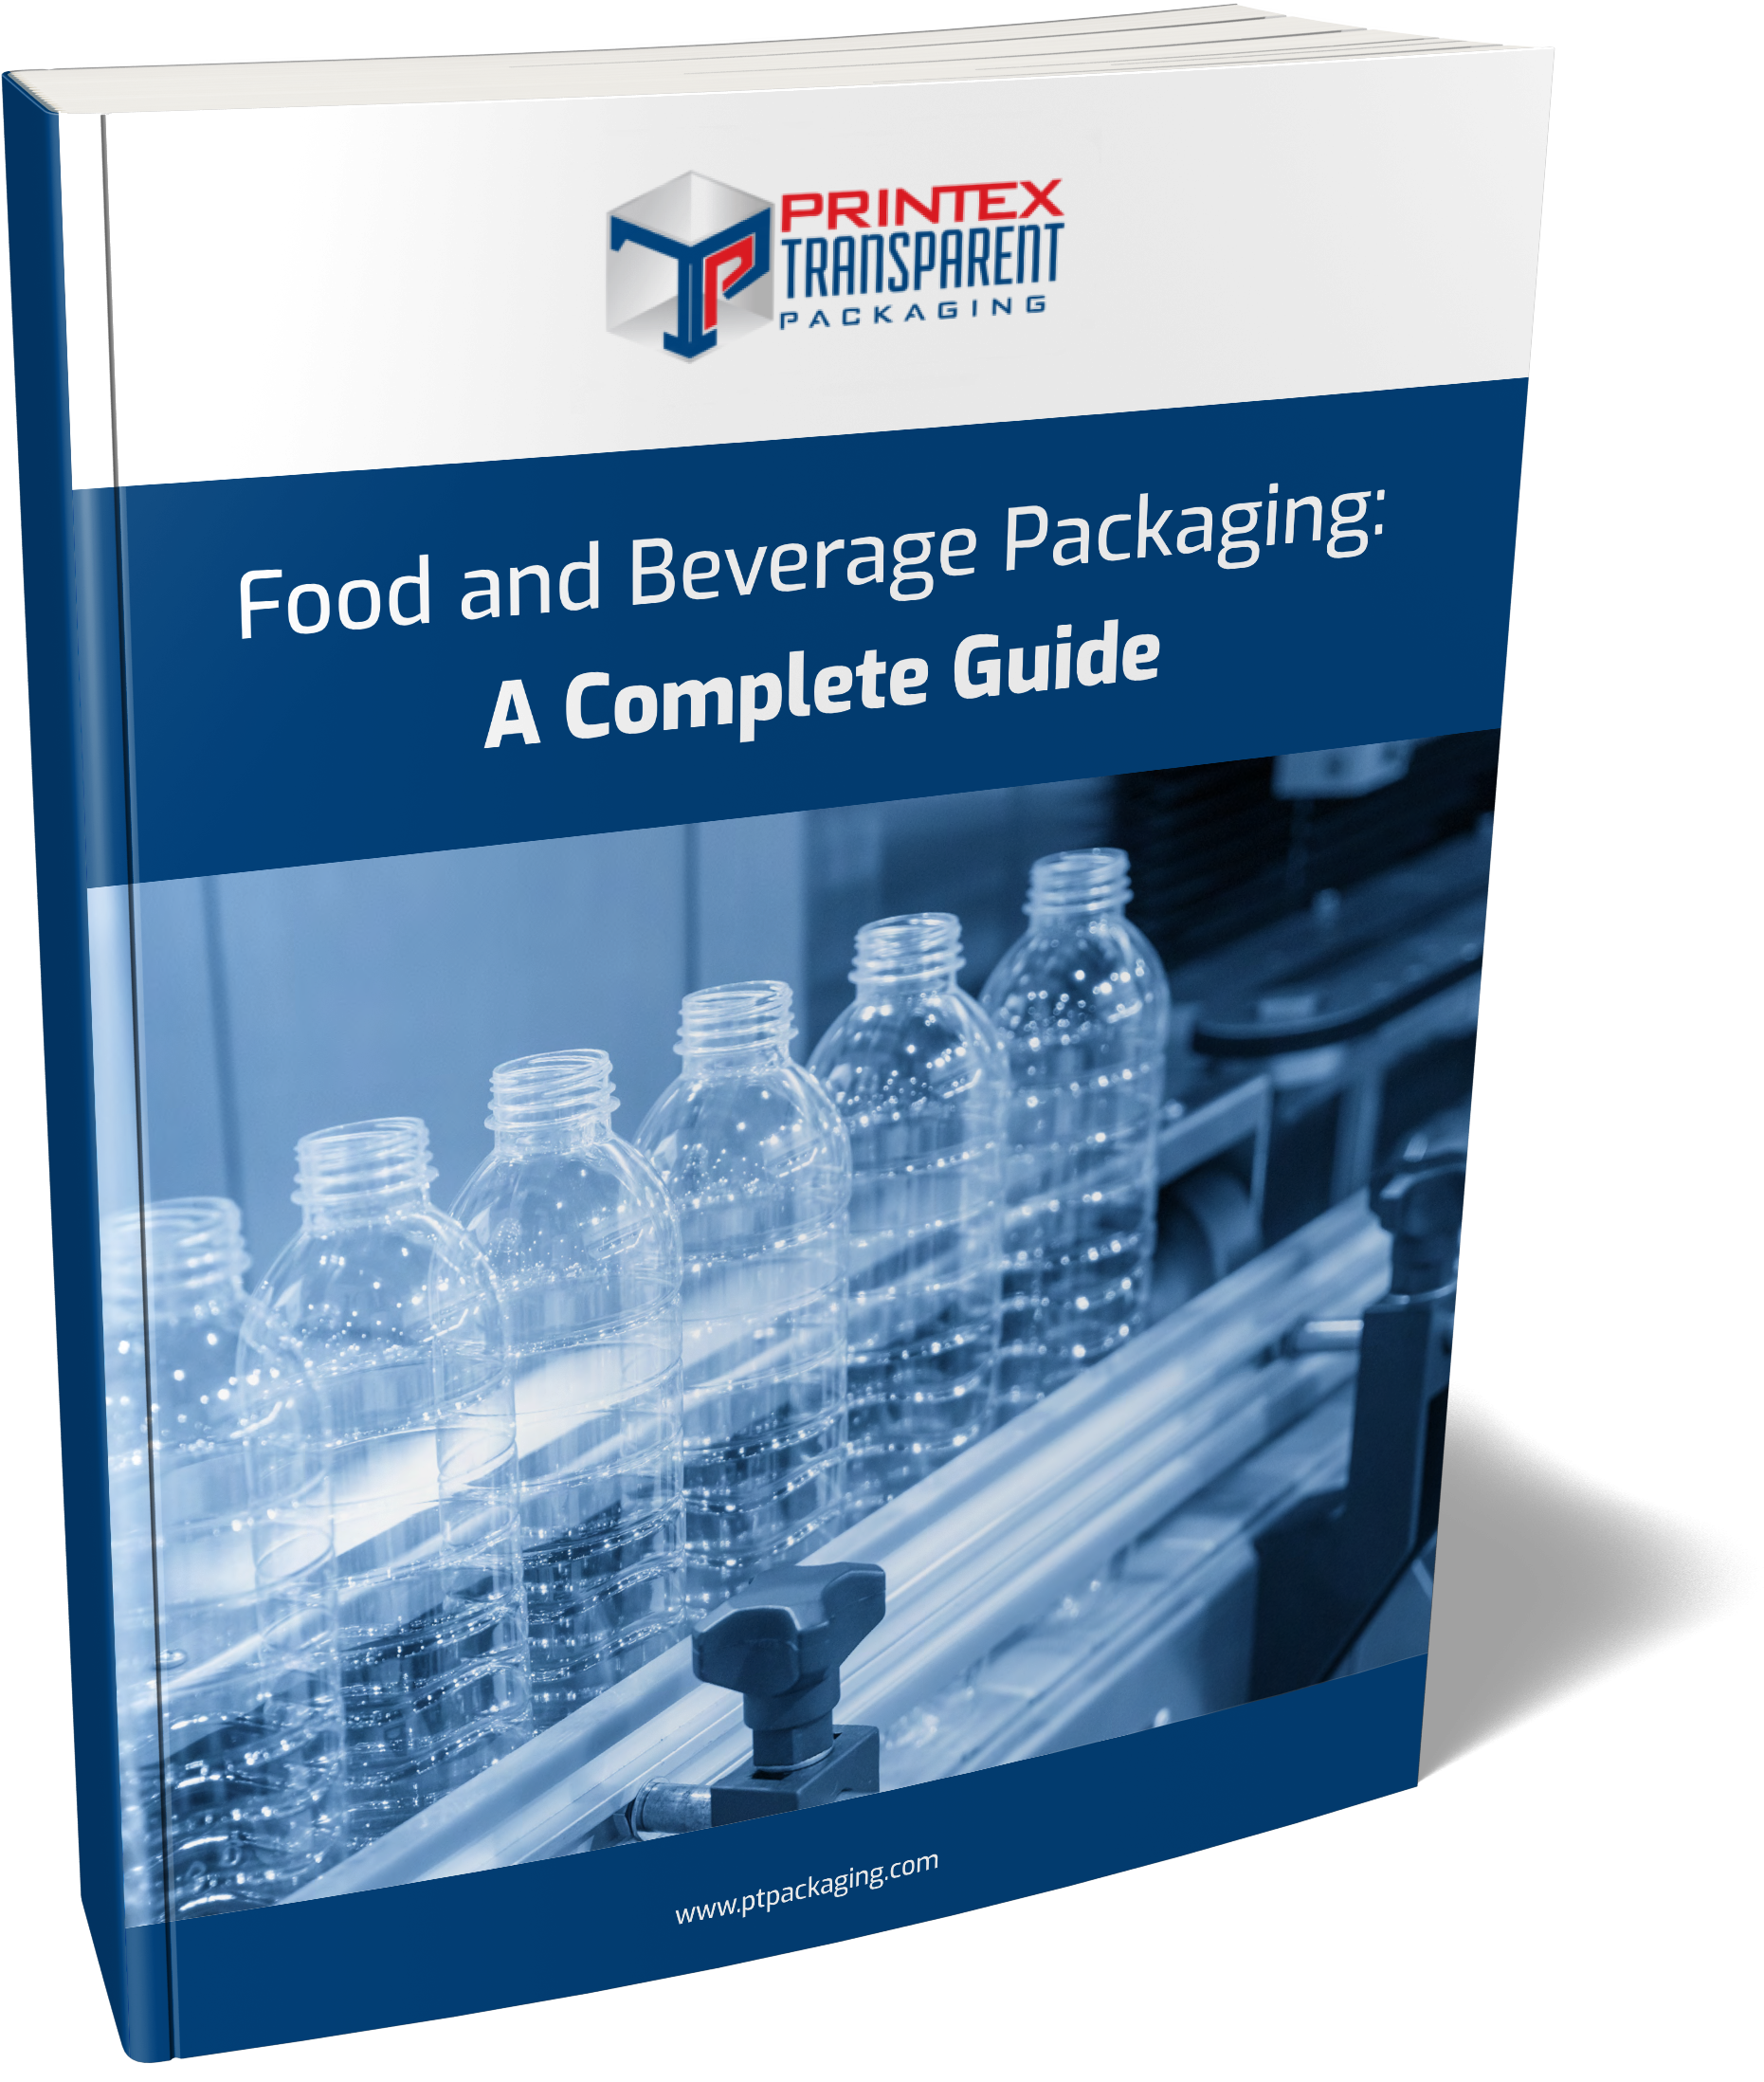 Food and Beverage Packaging: A Complete Guide